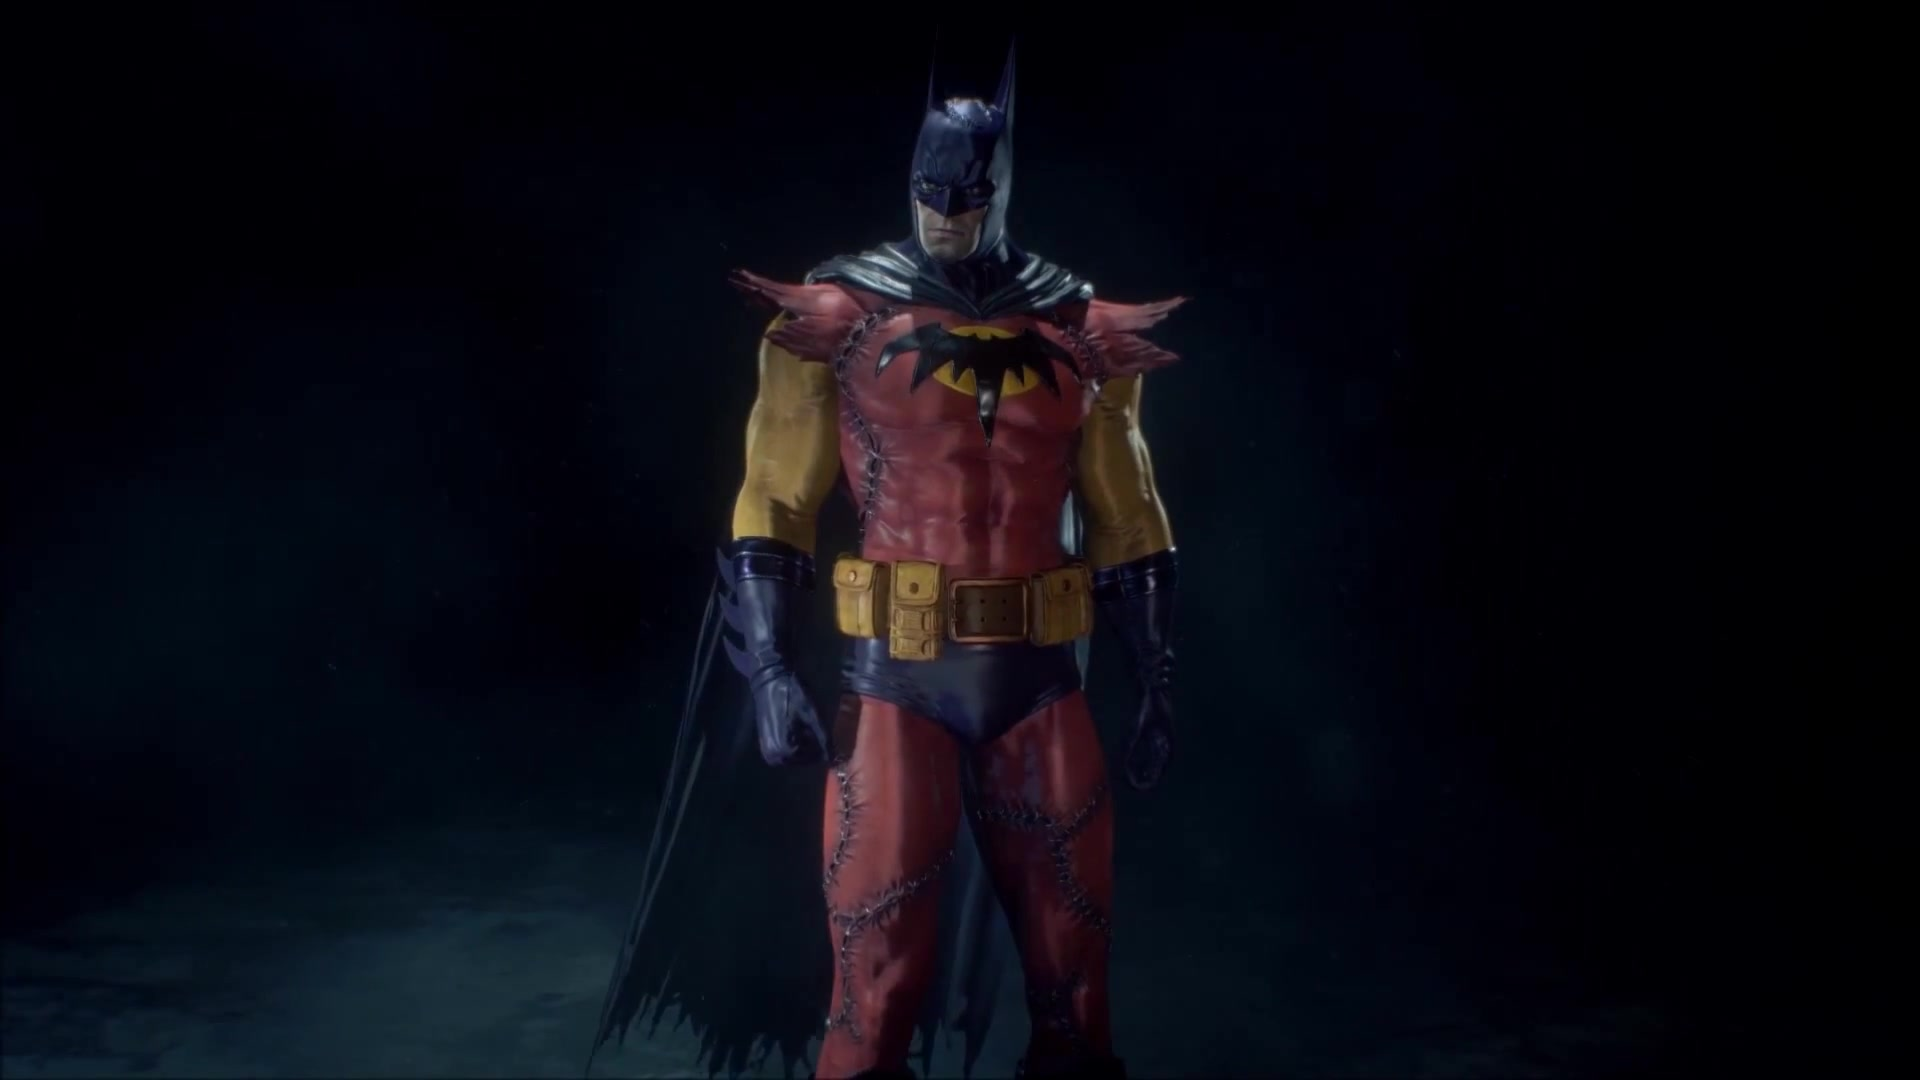 gallery shot of Batman in his Zur-En-Arrh form, which includes jagged, cut-up, sewn-together rags for his costume